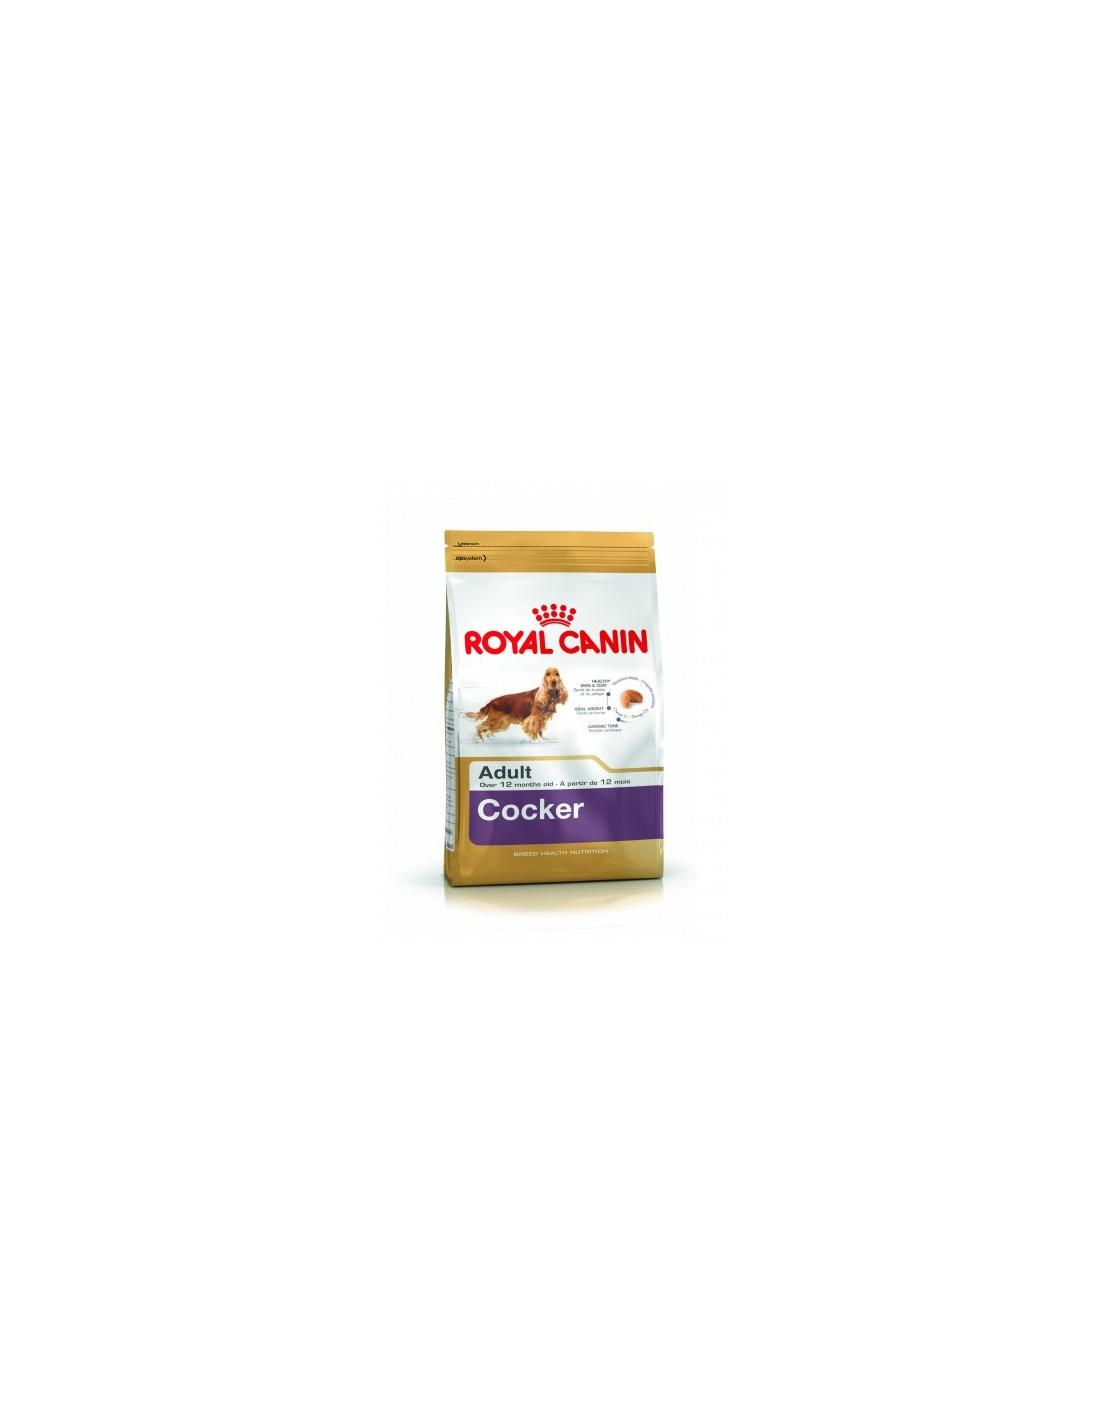 COCKER ADULT 3KG ROYAL CANIN - 1